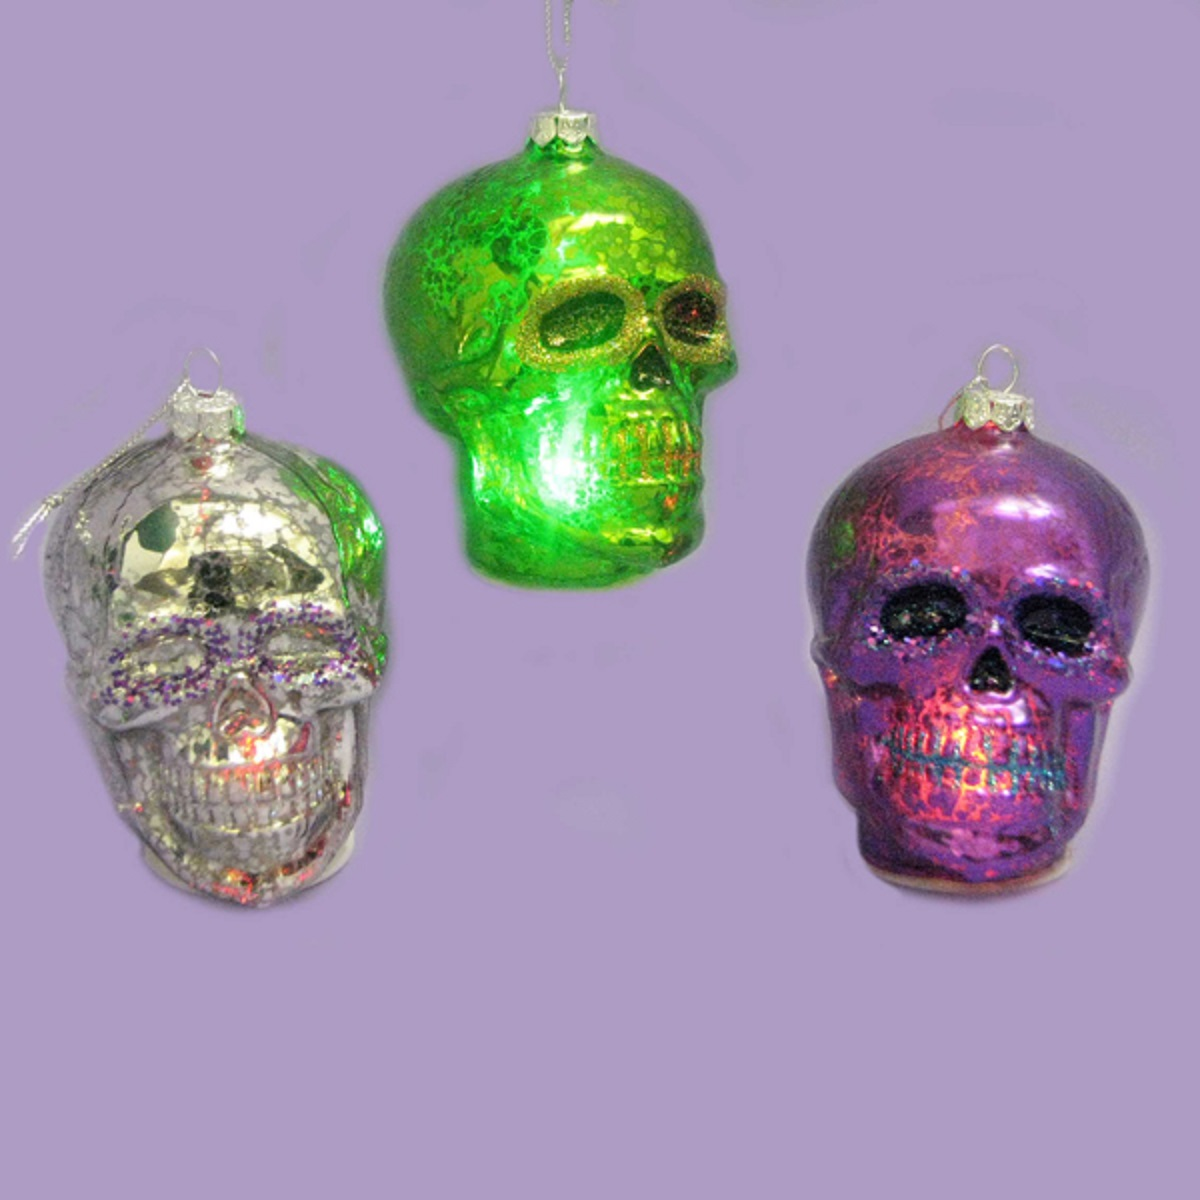 Pack of 6 Green, Purple and Silver Glass LED Light-up Skull Halloween Ornaments 3.25""